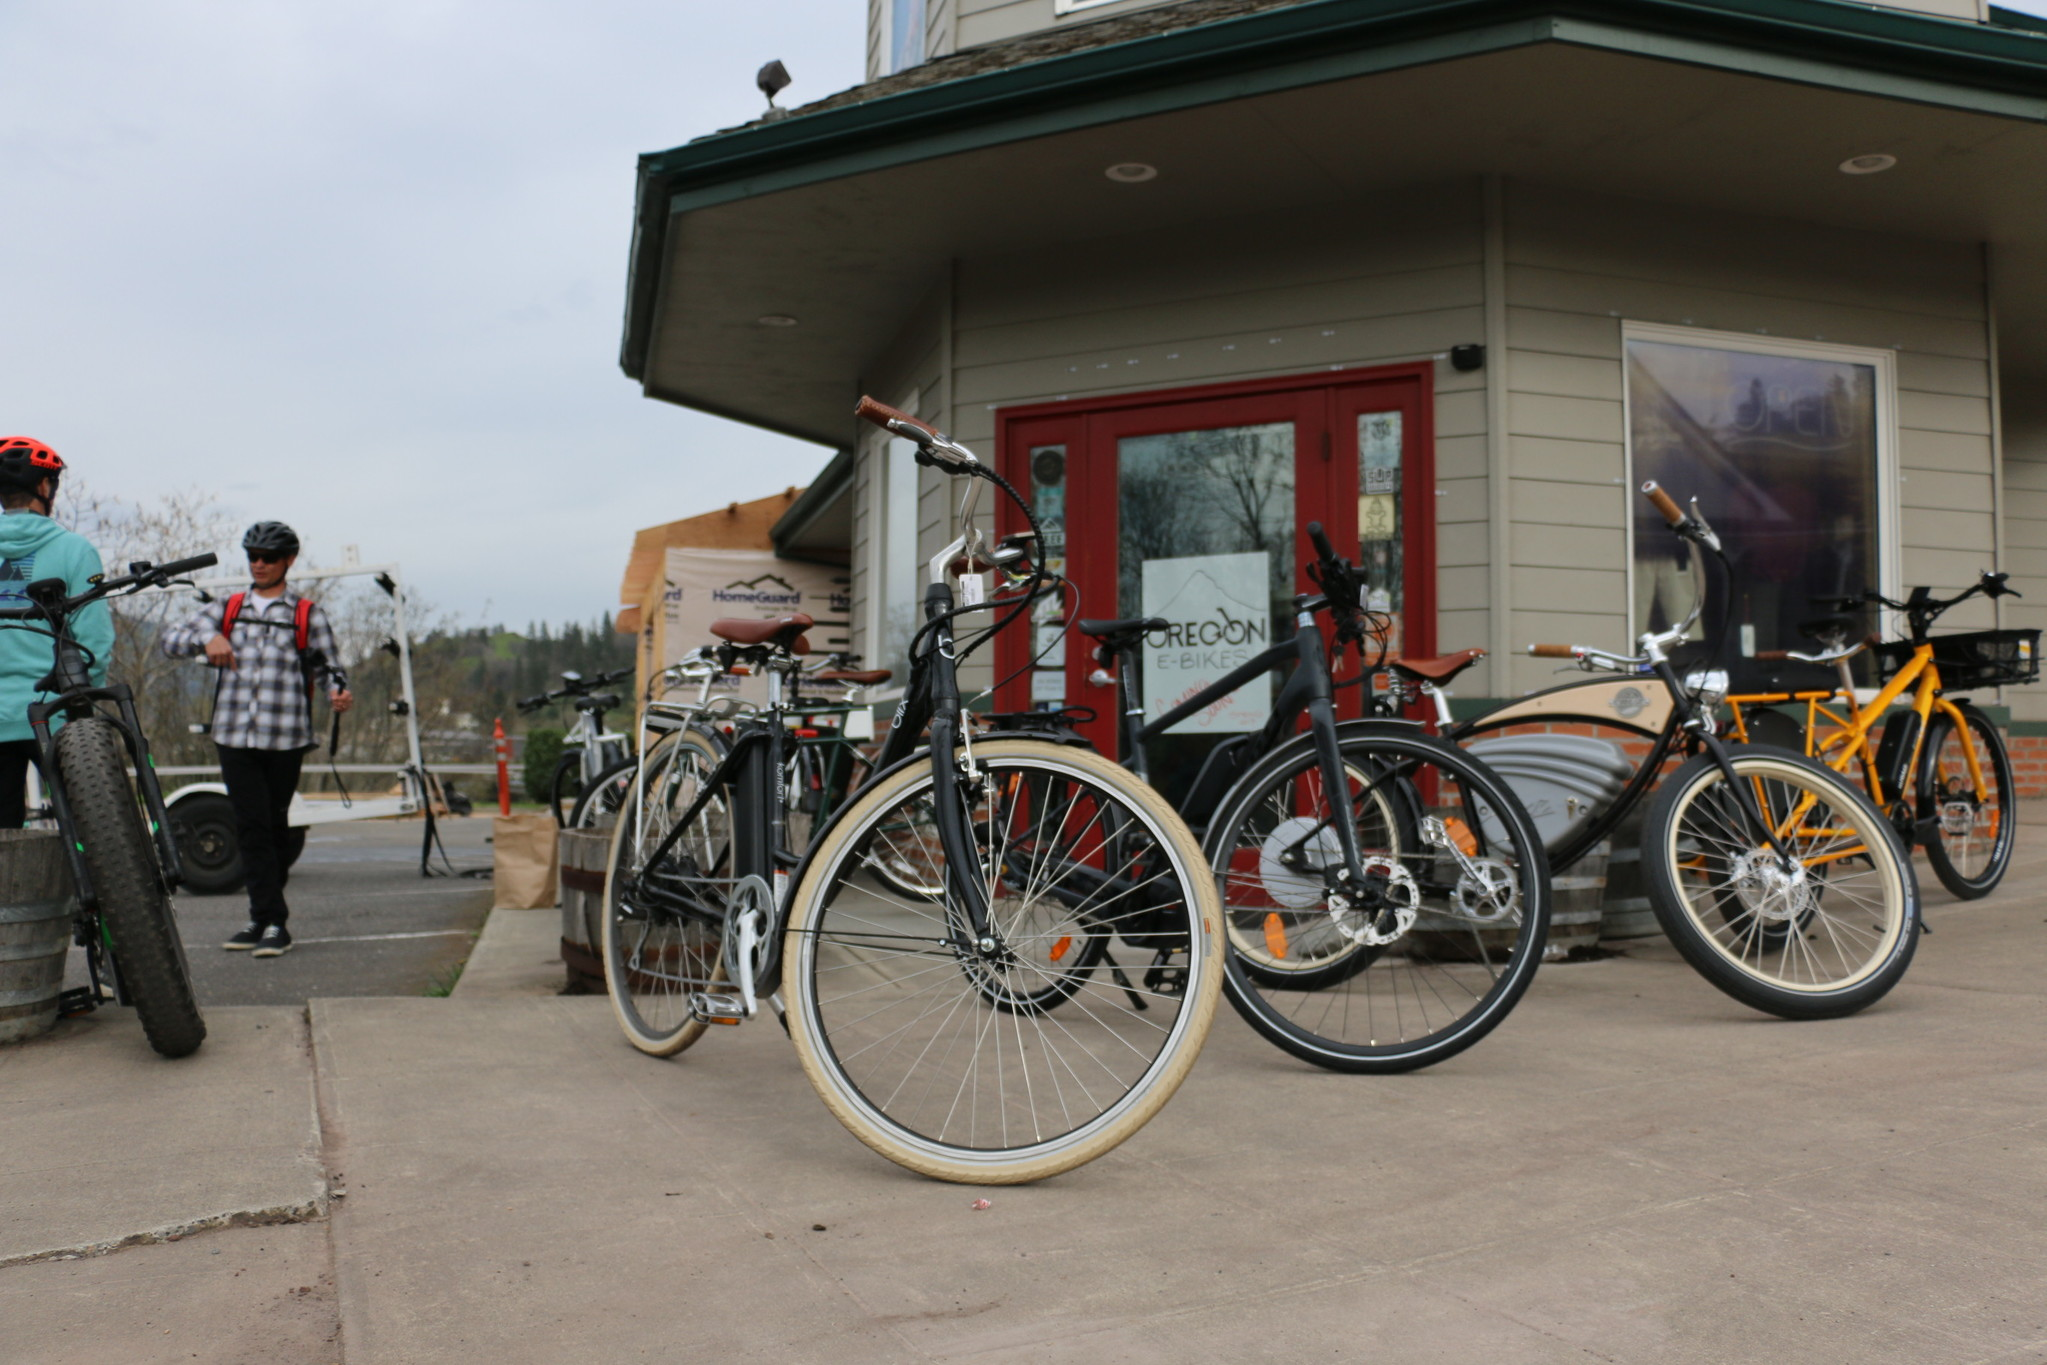 Oregon E-Bike Shop, Big Winds